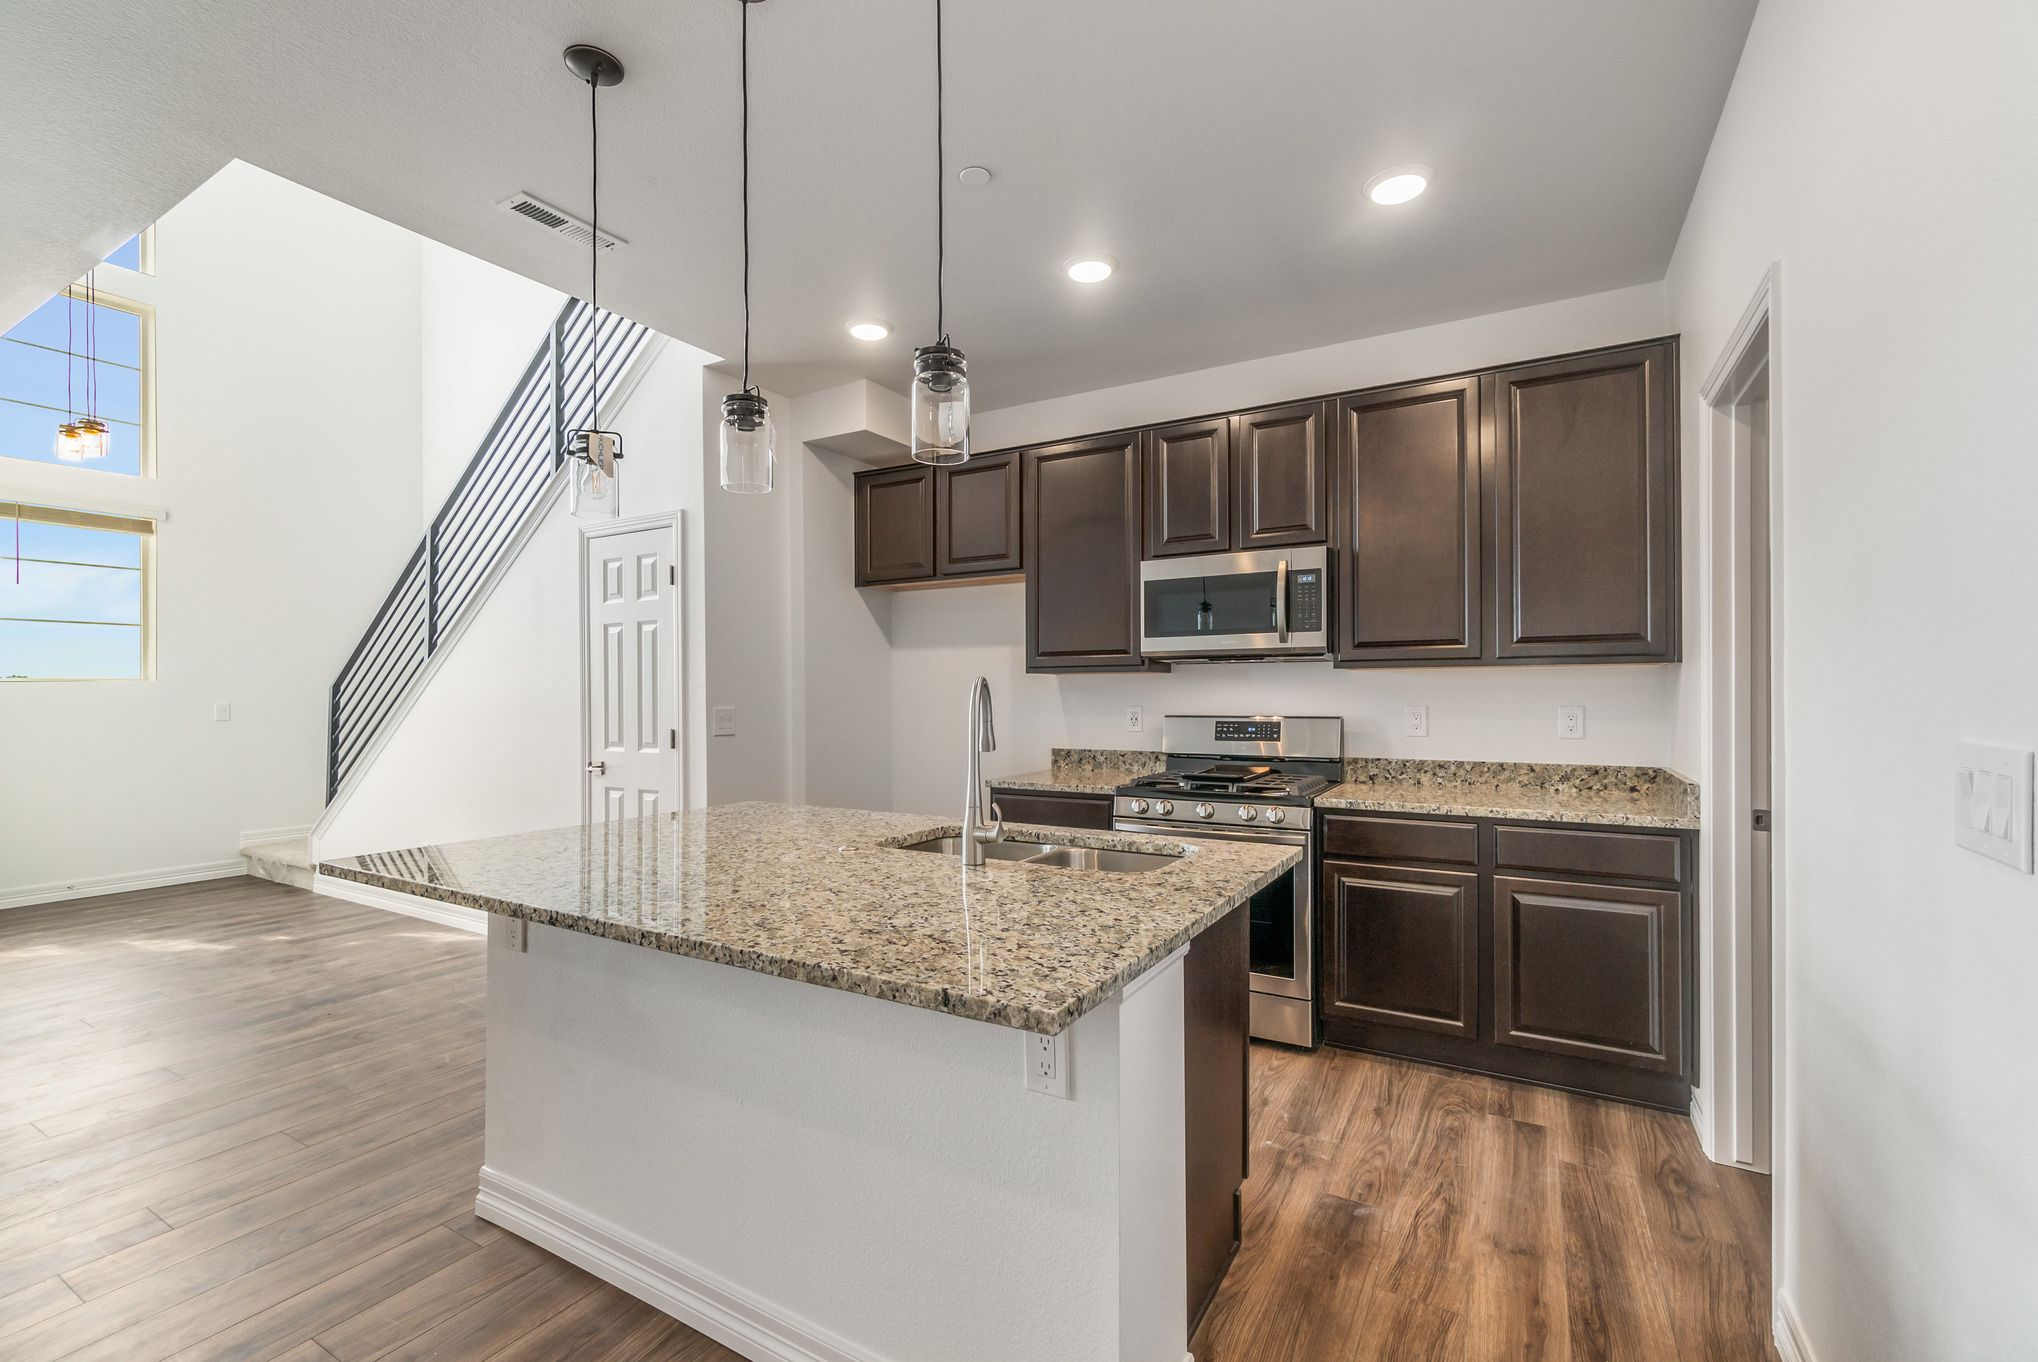 Kitchen featured in the Hazel By Lokal Homes in Colorado Springs, CO